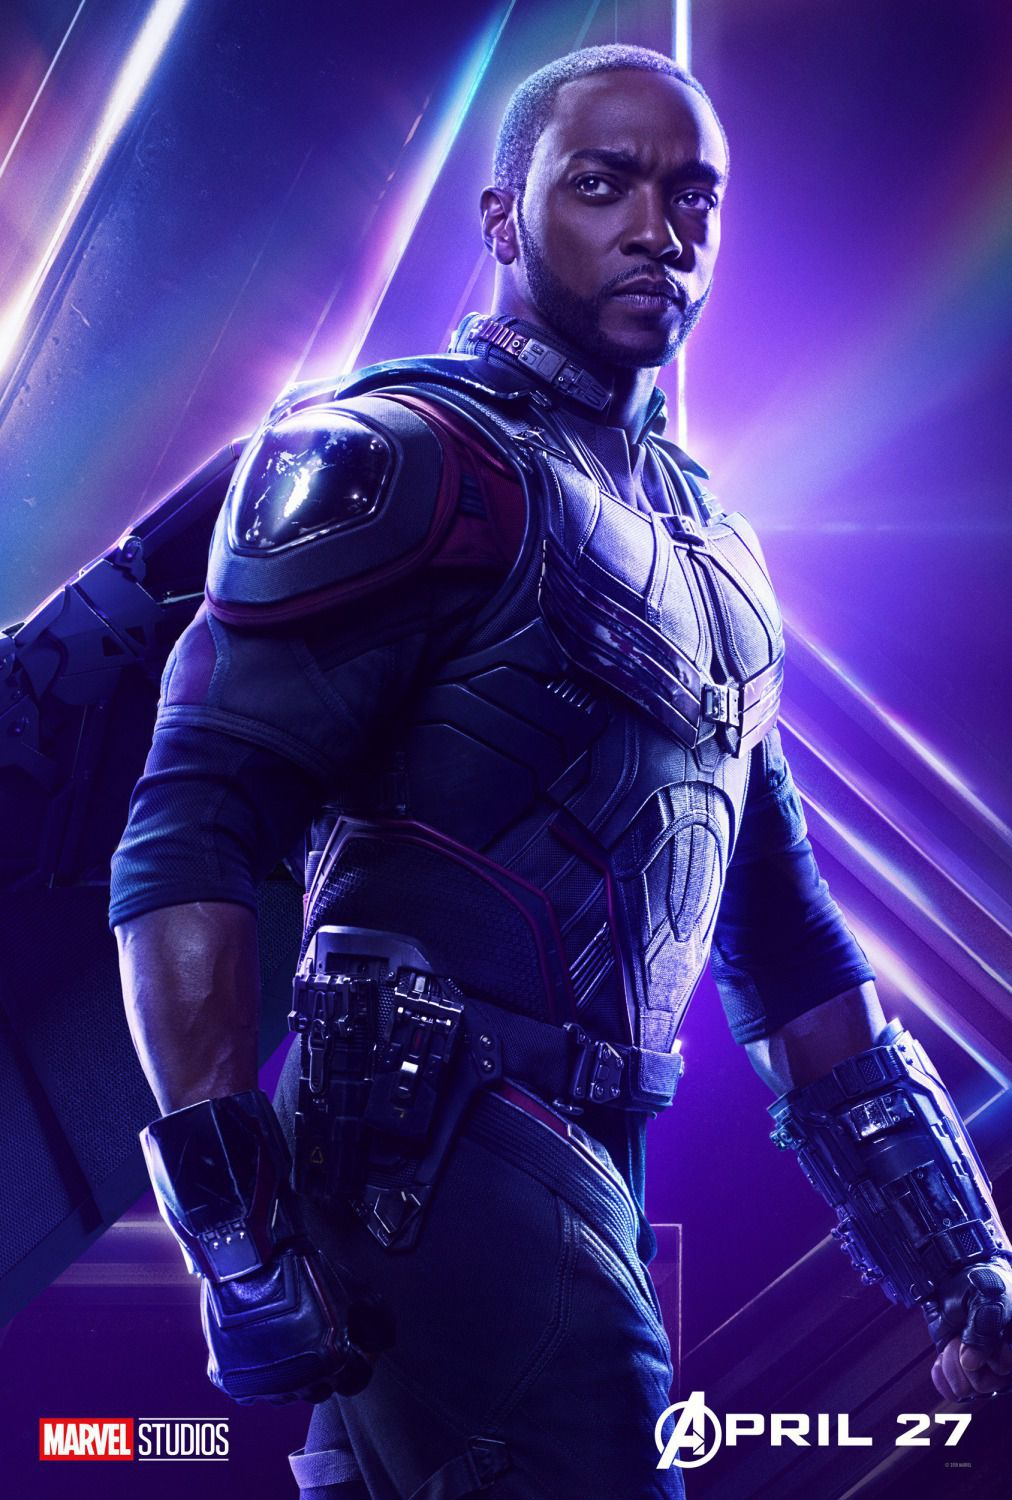 Anthony Mackie - Sam Wilson - Falcon